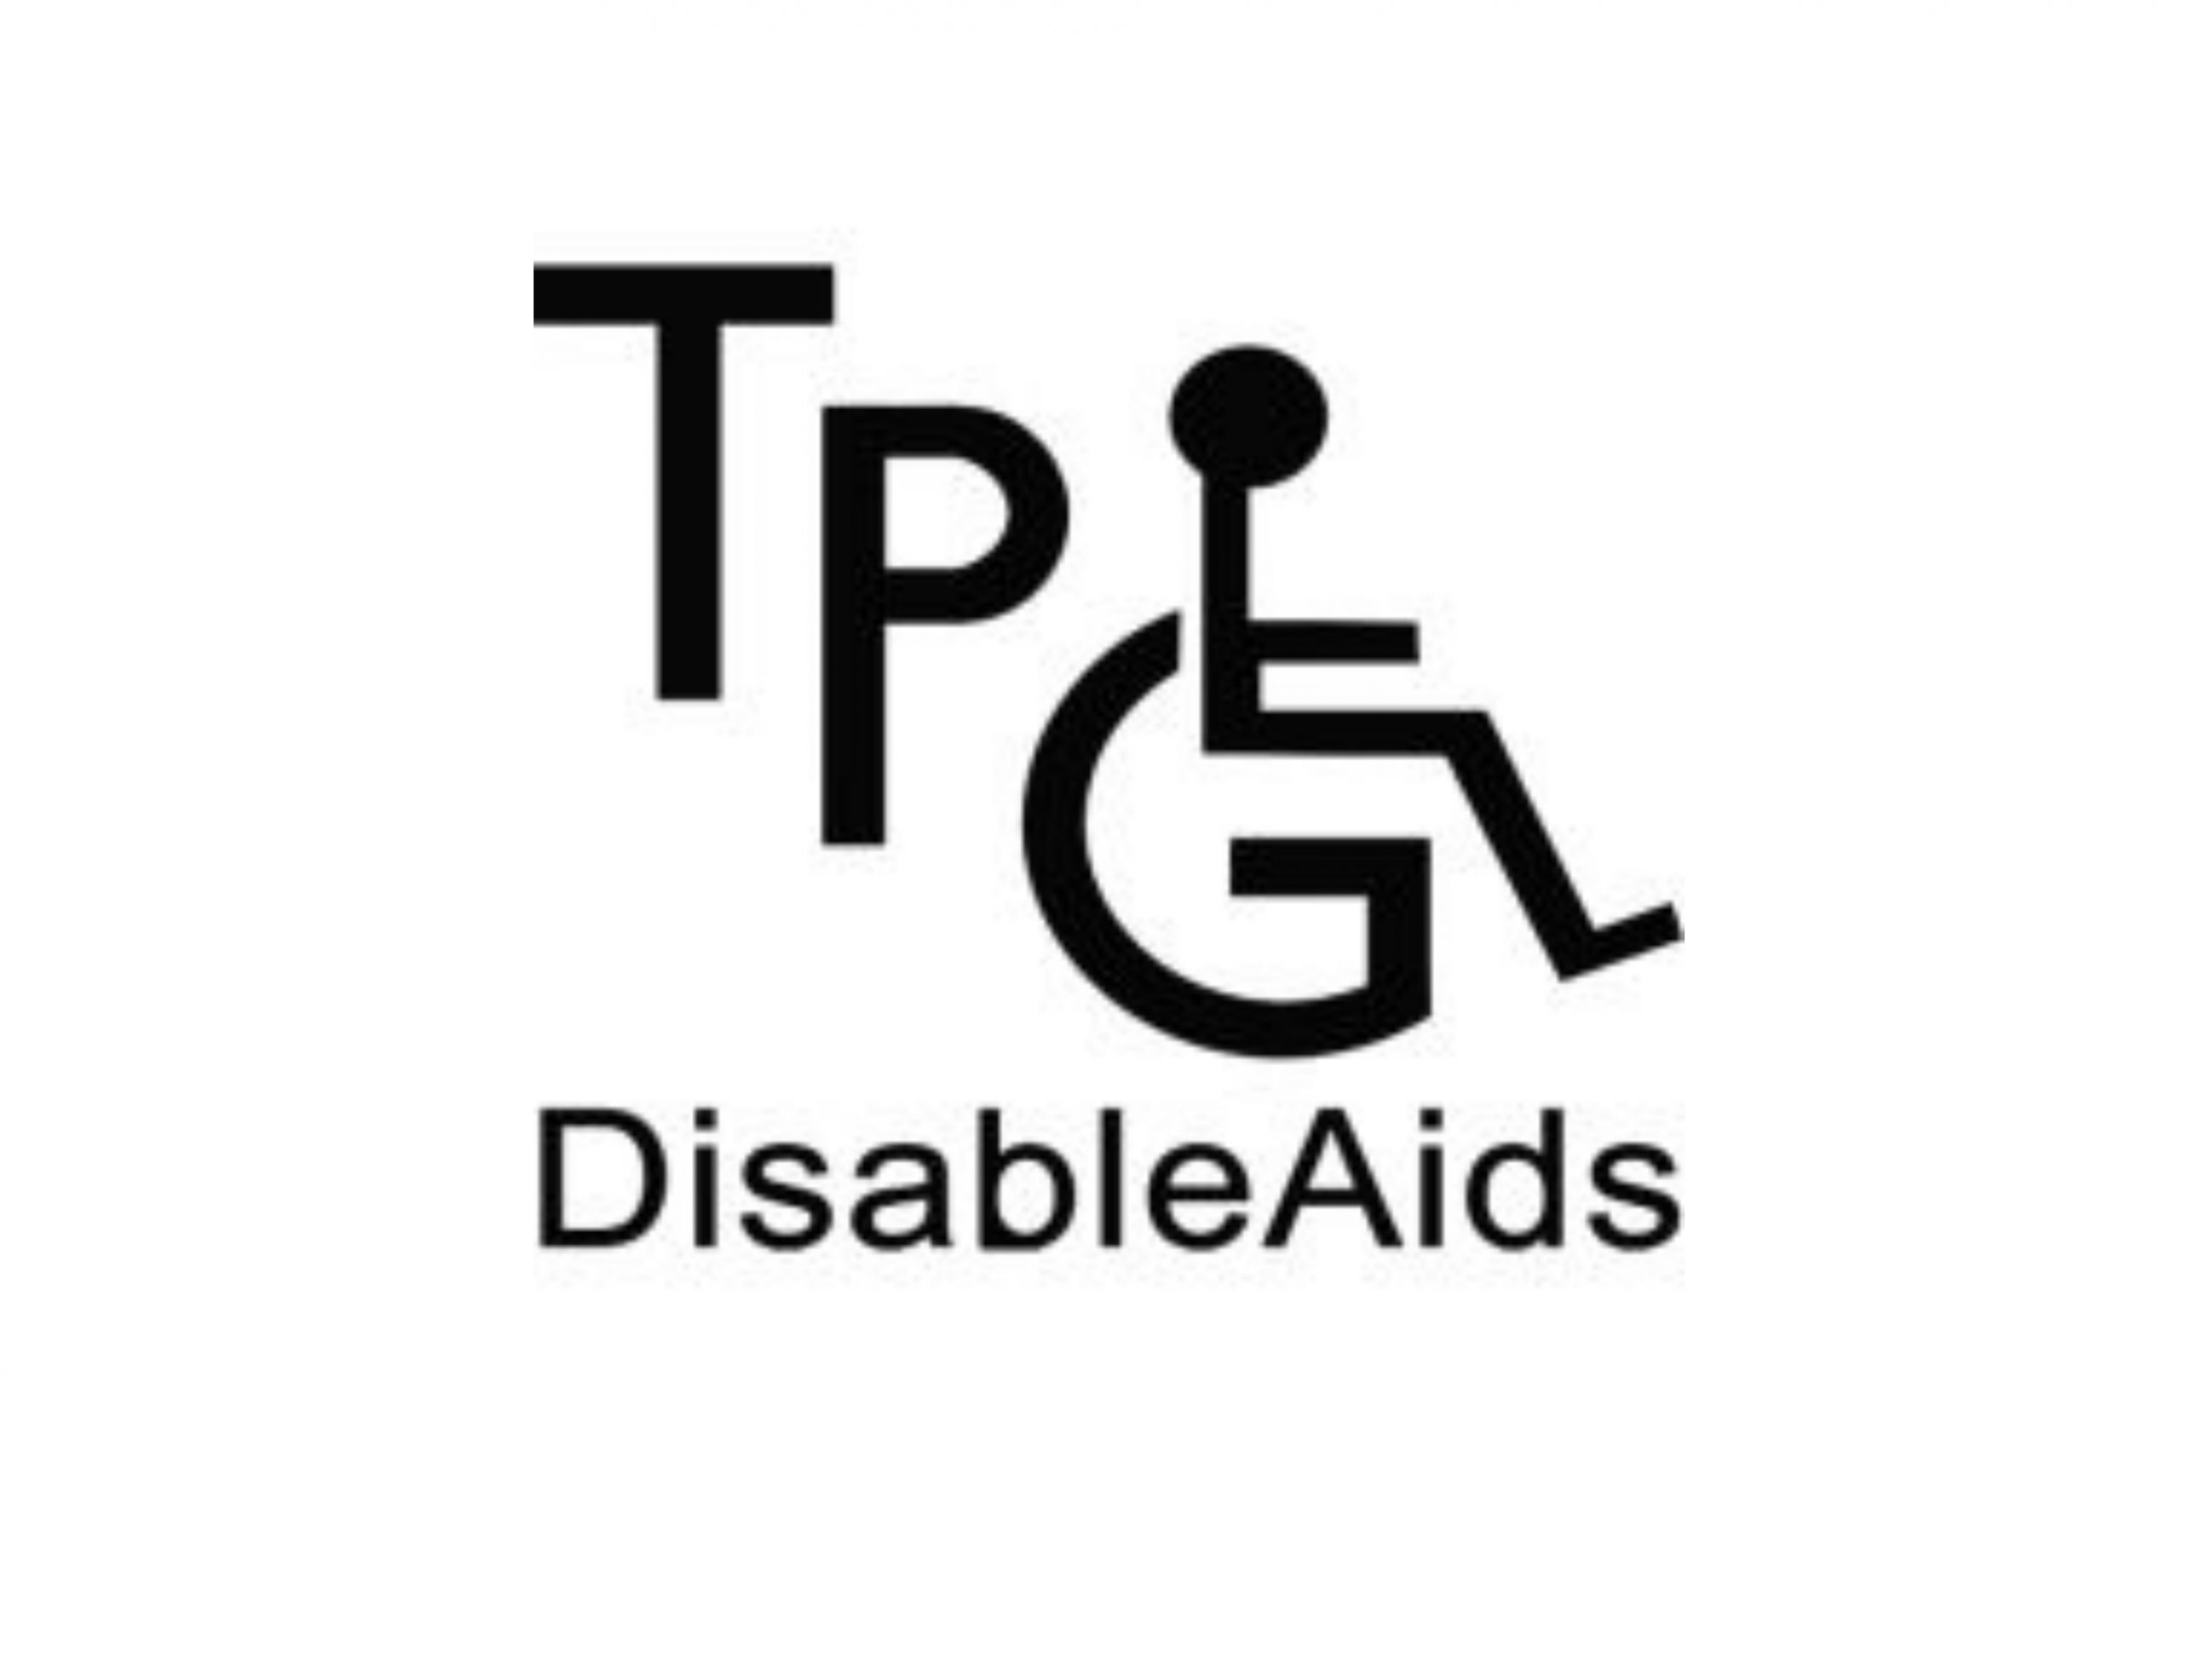 TPG DisableAids Limited comes to the help of Local Voluntary Organisation